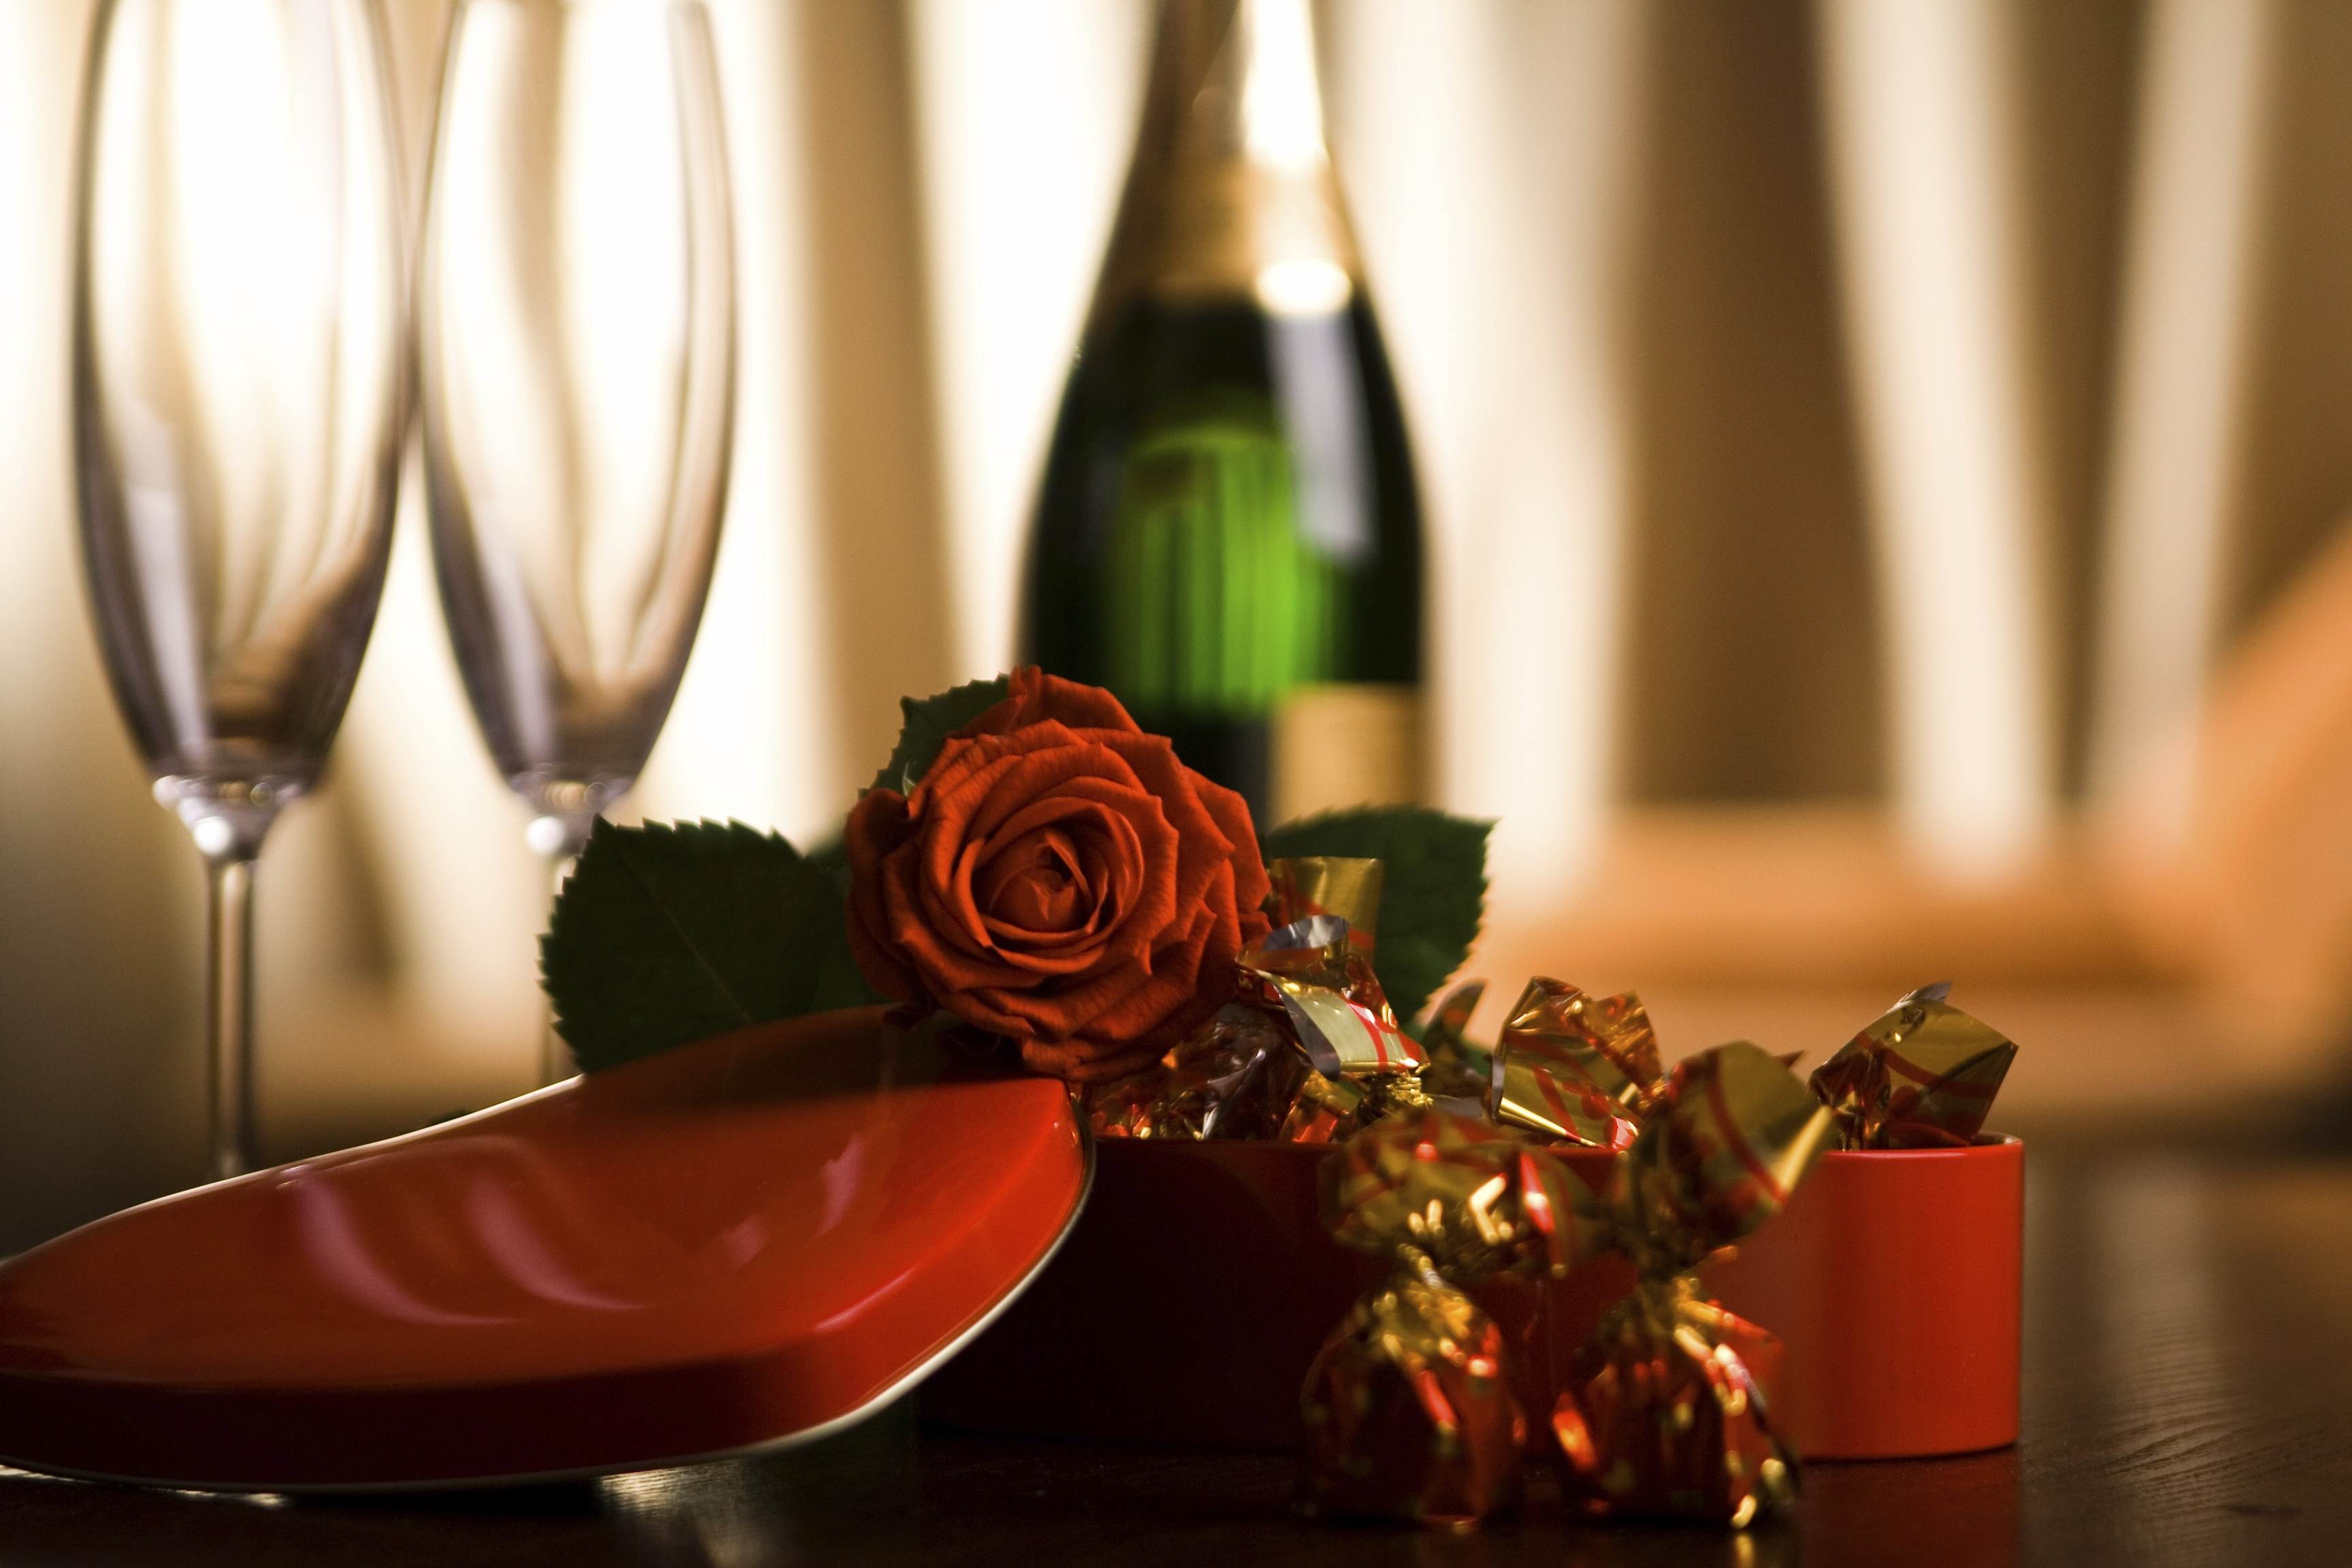 Happy New Year 2017 Hd Wallpaper Champagne Chocolate And Roses Love Valentine S Day